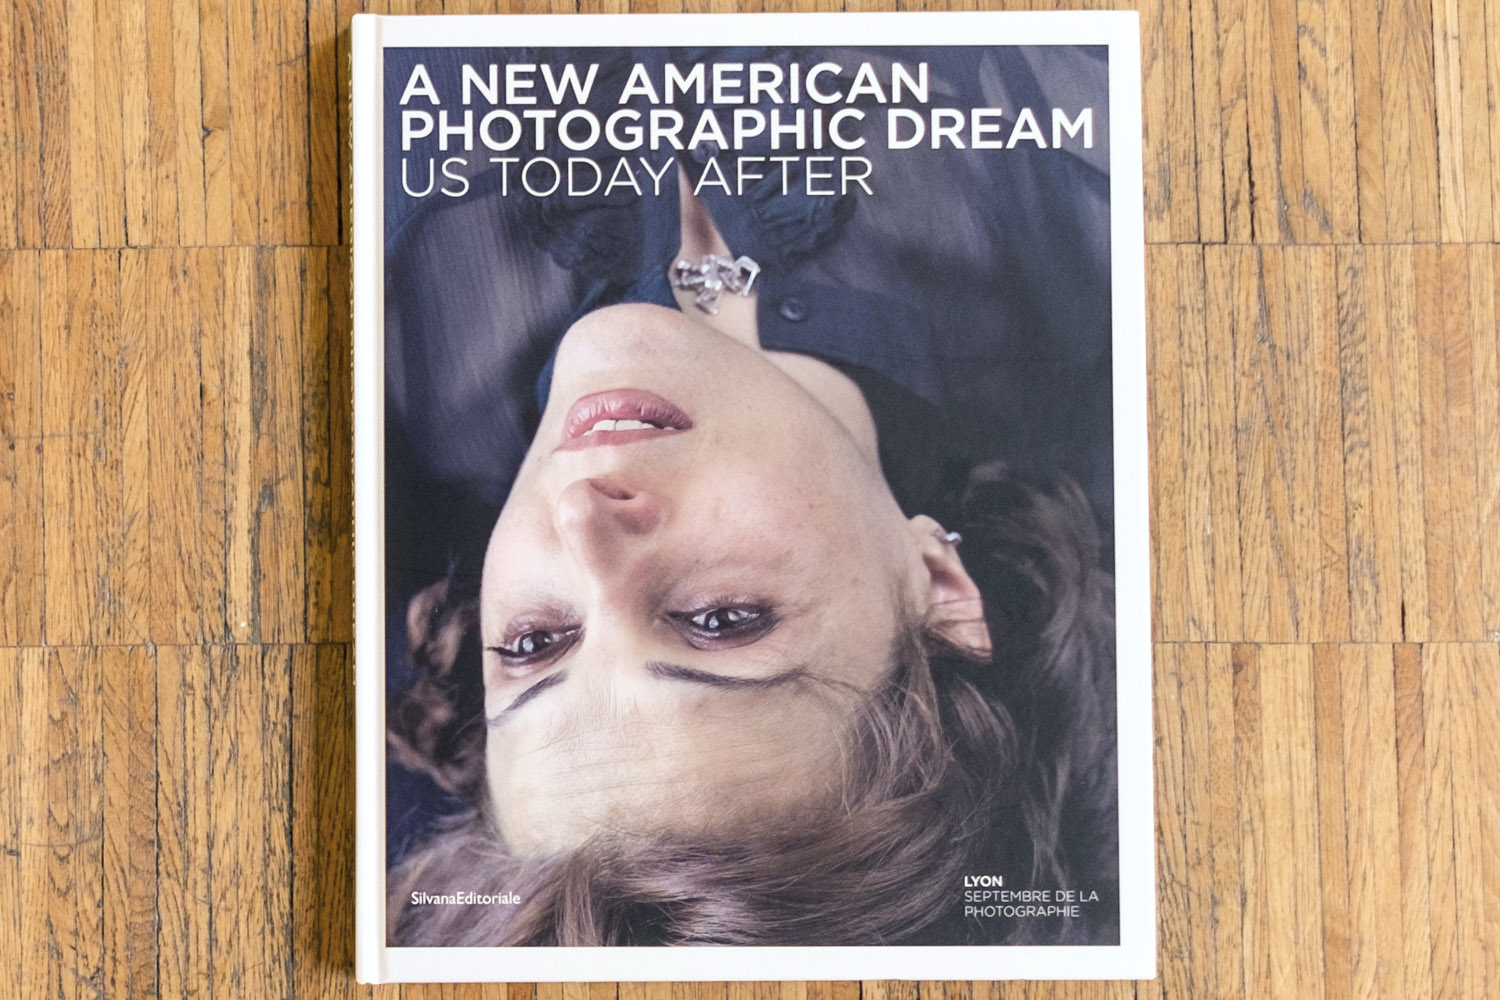 A new american photographic dream, us today after